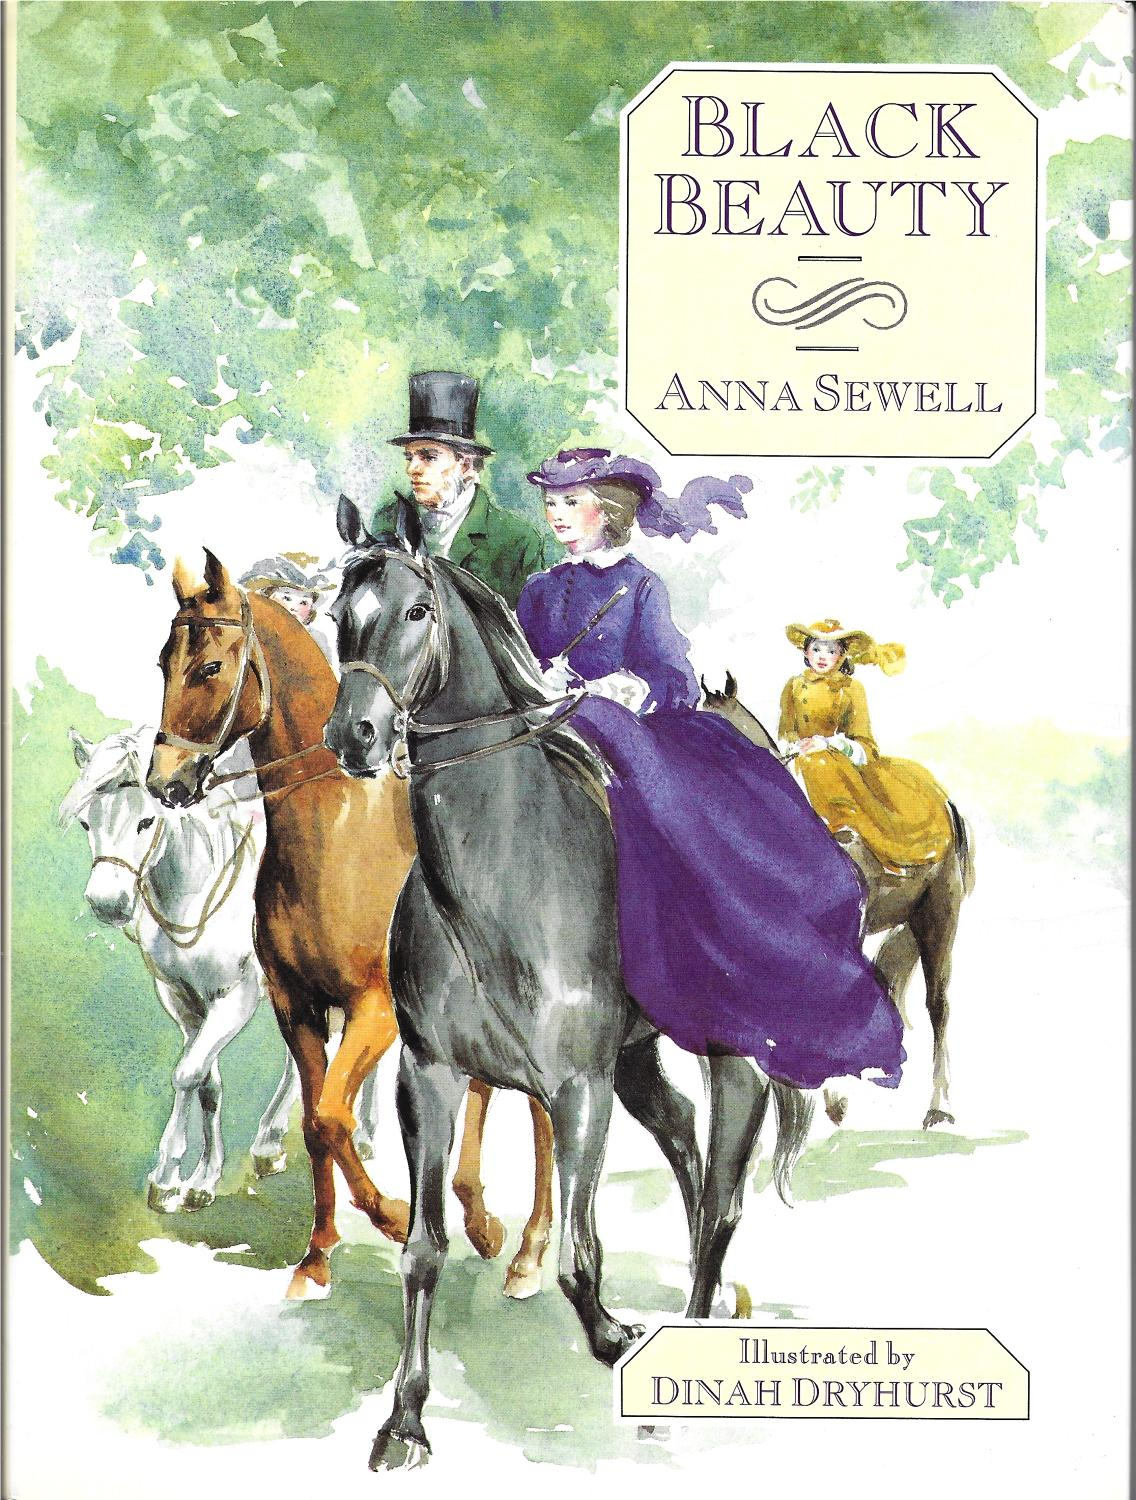 an analysis of the project gutenberg etext of black beauty by anna sewell Of the project gutenberg etext of black beauty etext of black beauty by anna sewell in an analysis of the project gutenberg etext of.